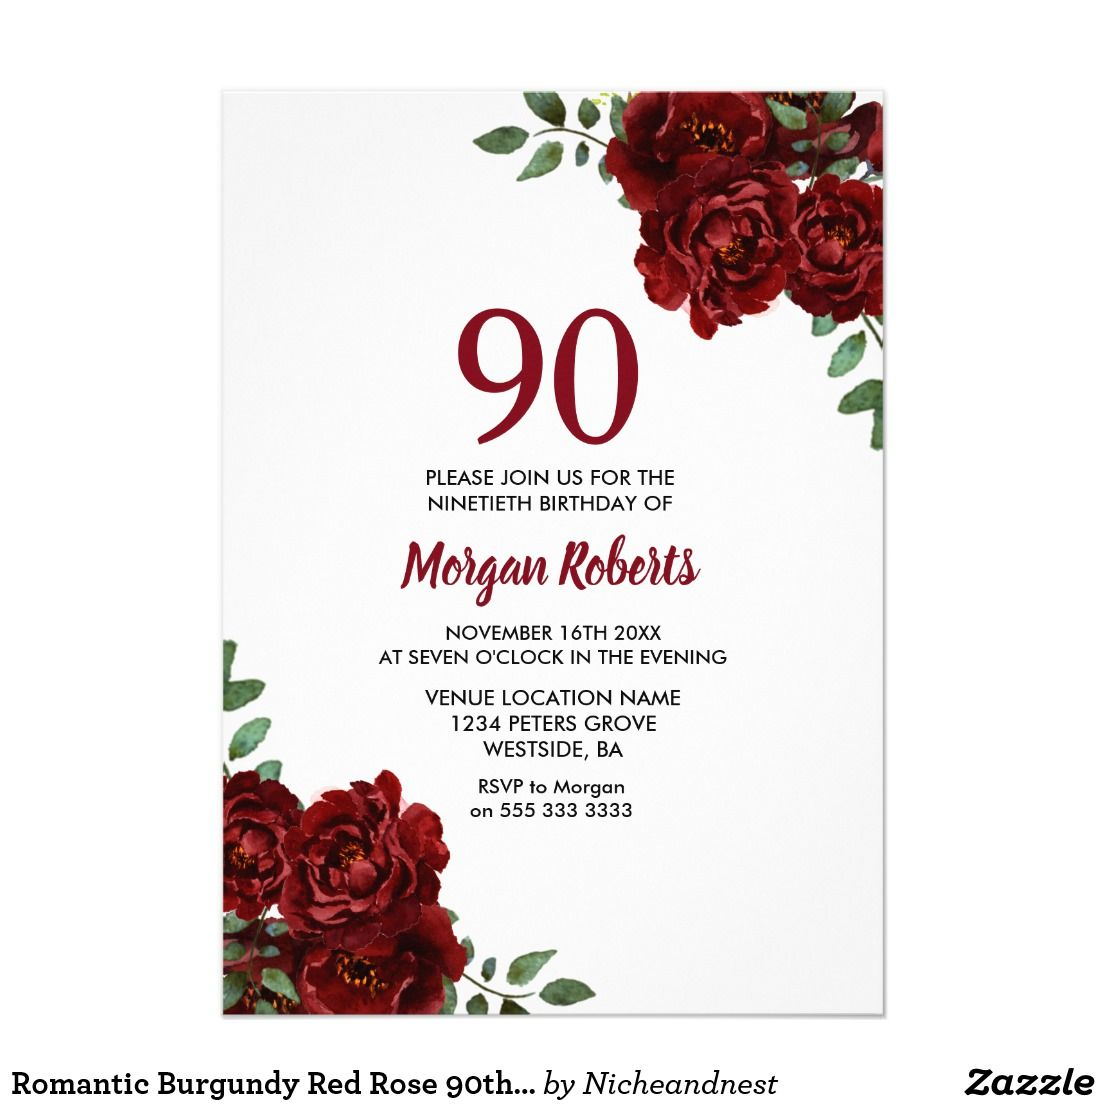 Romantic Burgundy Red Rose 90th Birthday Invite Affiliate Ad Link Custom Party Invitations Invites Birthdayparty